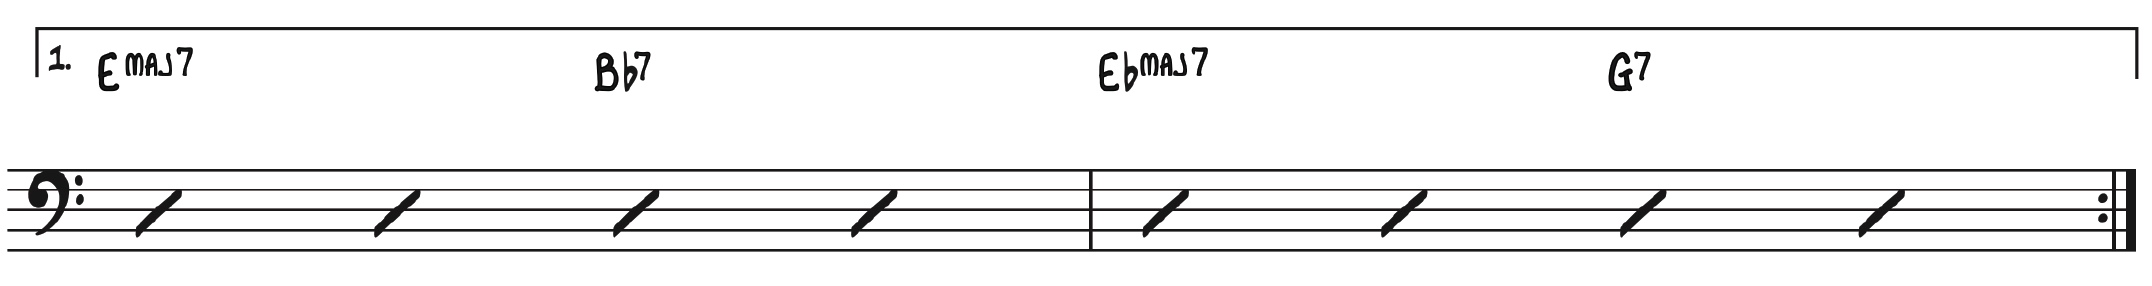 1st Ending Basic Chords Structure